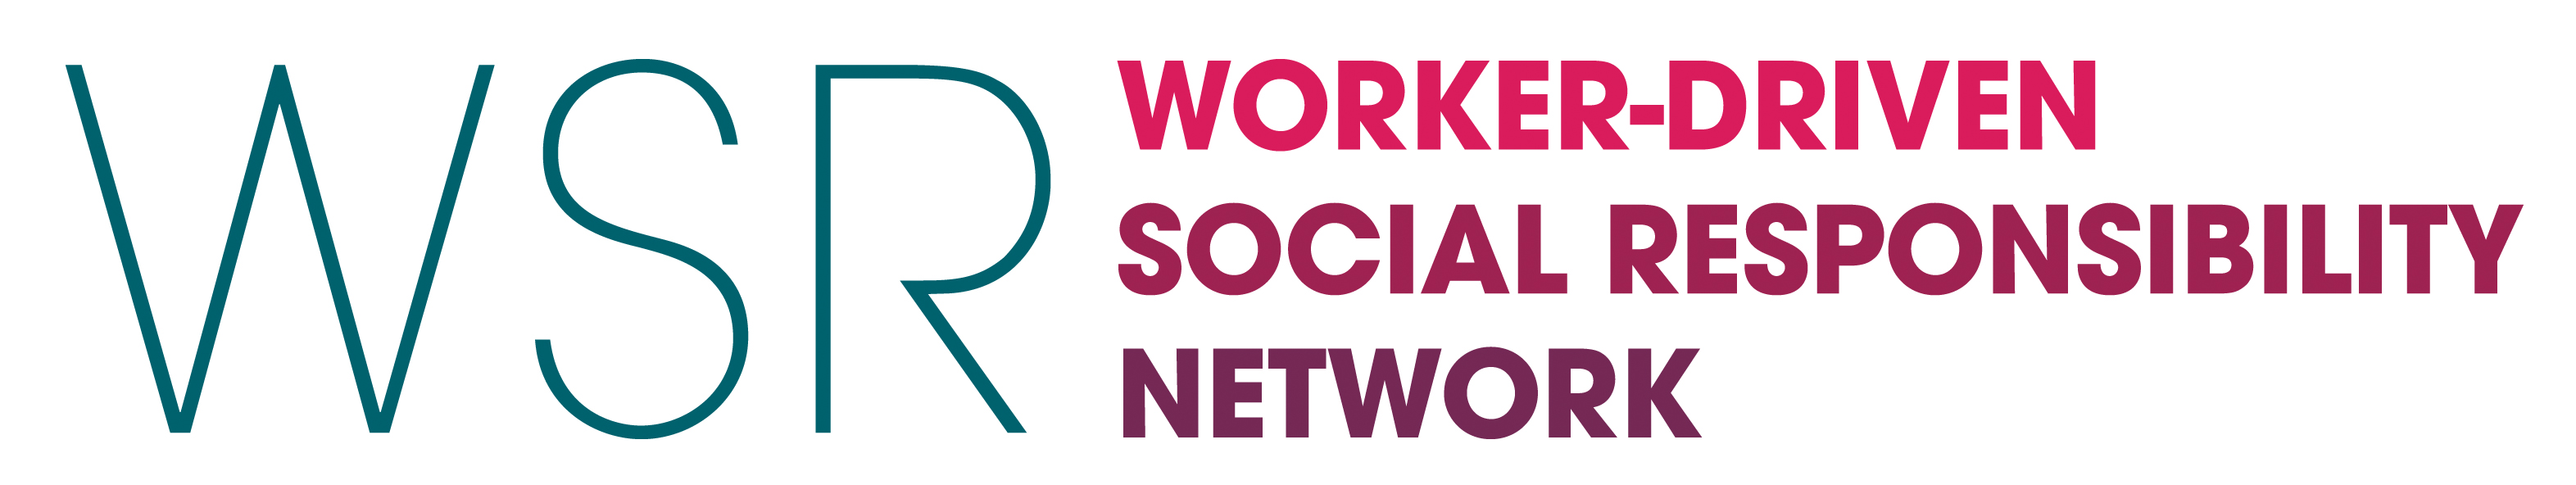 WSR - Worker-driven Social Responsibility Network